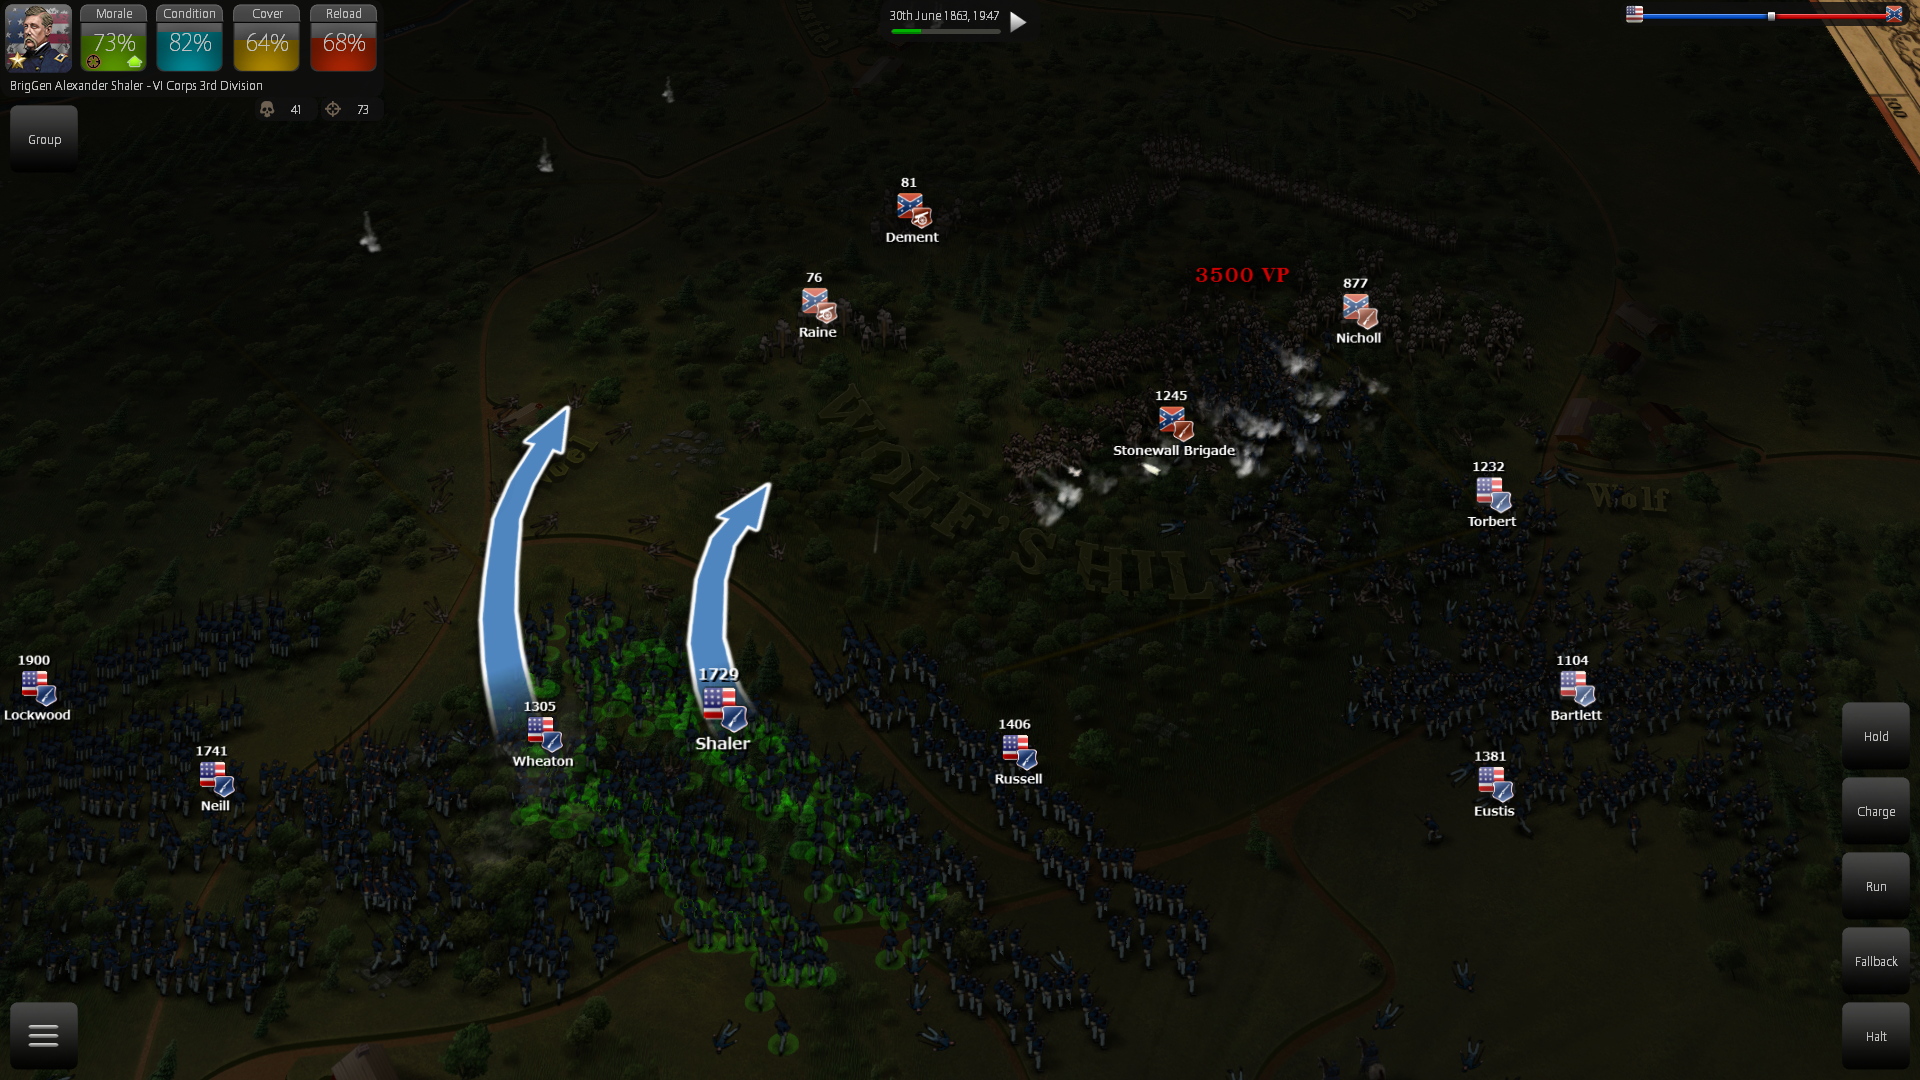 """New multiplayer map """"Night Assault"""". Defend as Confederates against a much larger Union army."""